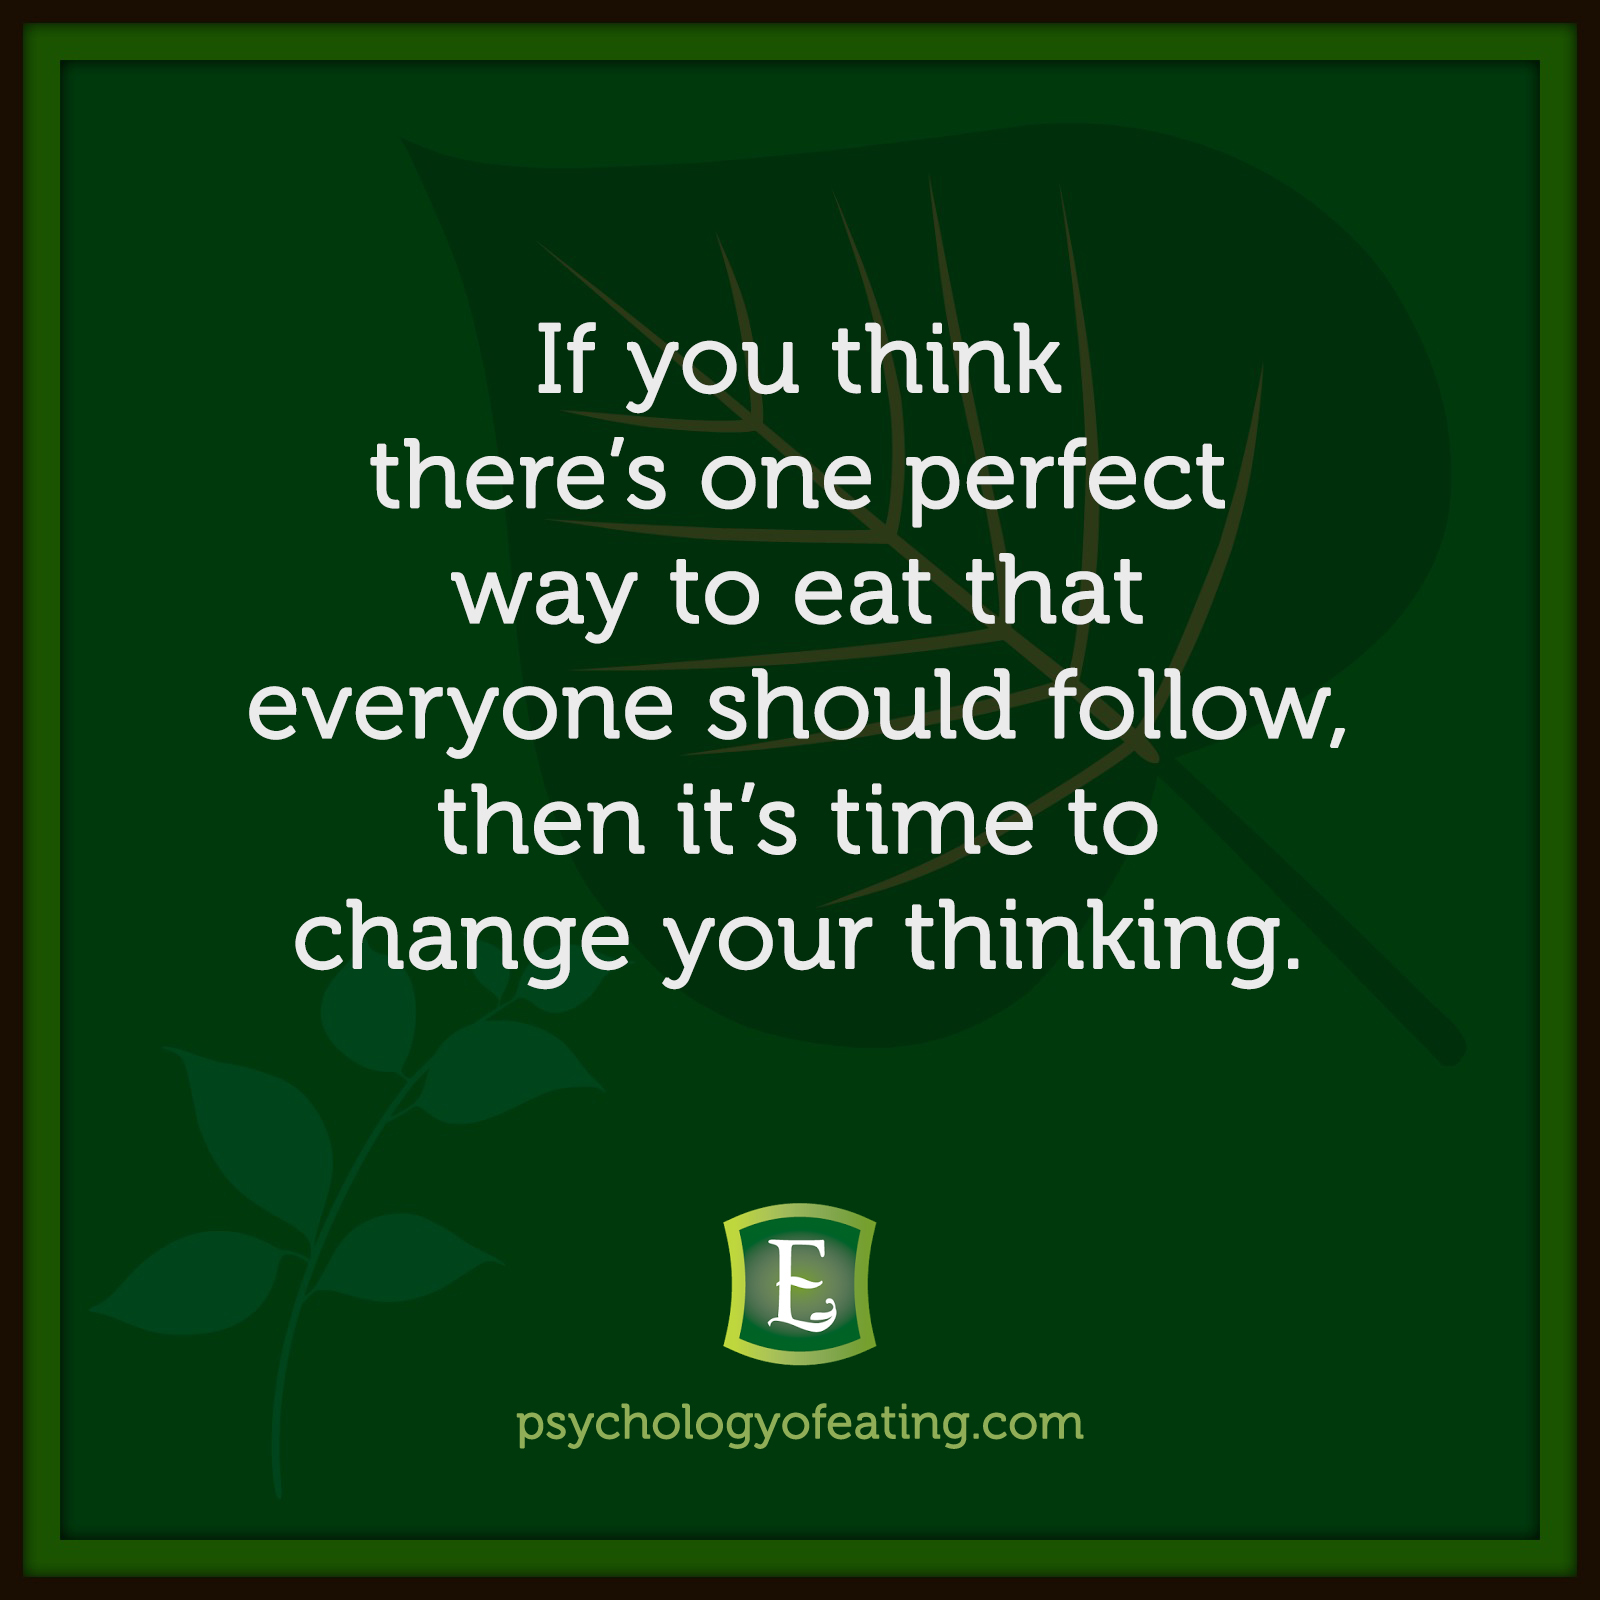 If you think there's one perfect way to eat that everyone should follow, then it's time to change your thinking. #health #nutrition #eatingpsychology #IPE